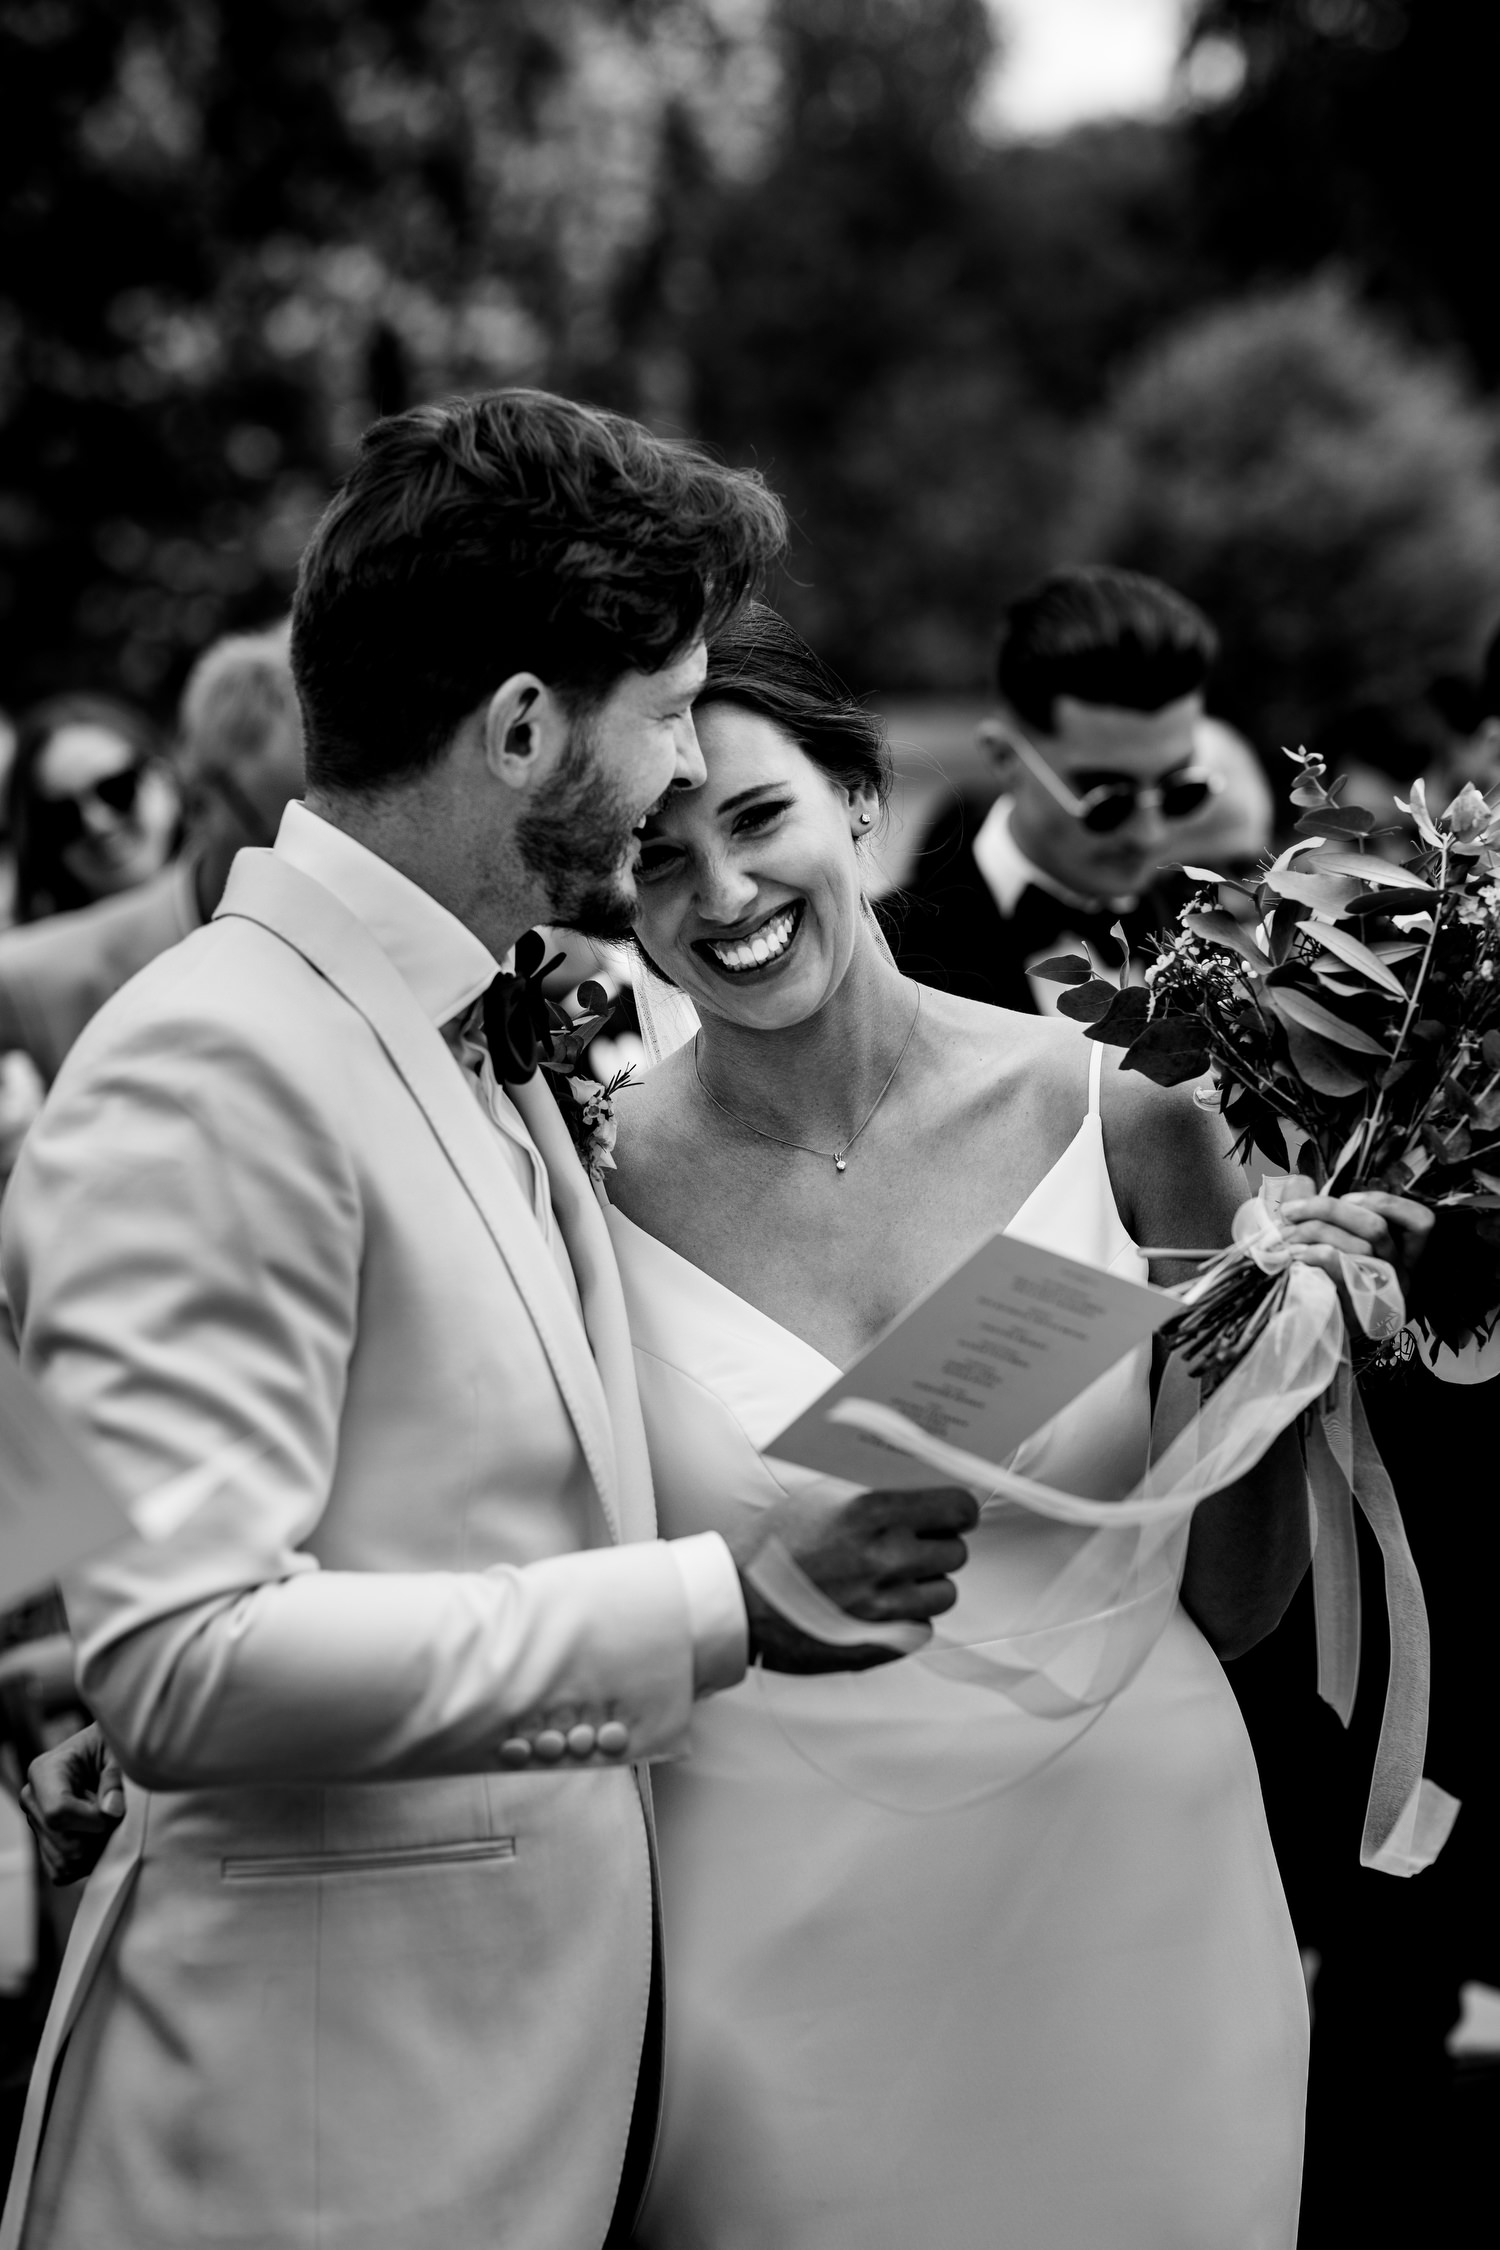 bride and groom share moment during ceremony